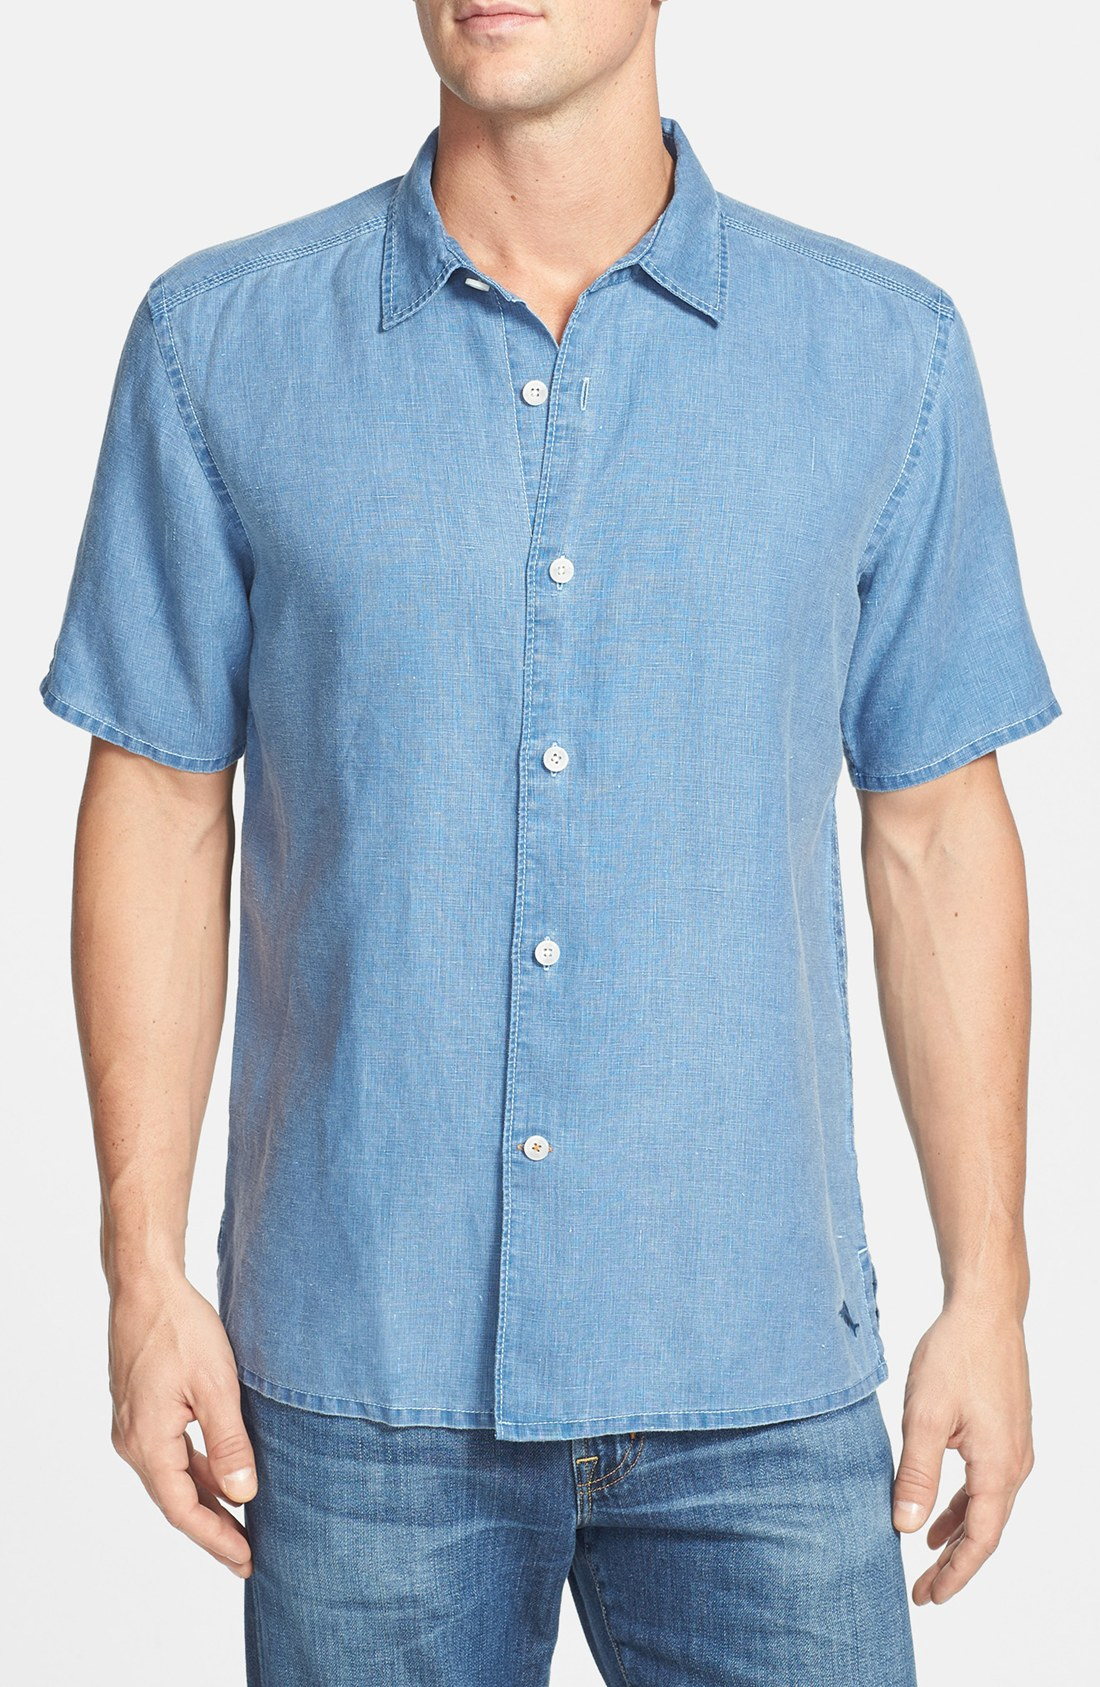 Tommy Bahama Sea Glass Sport Shirt In Blue For Men